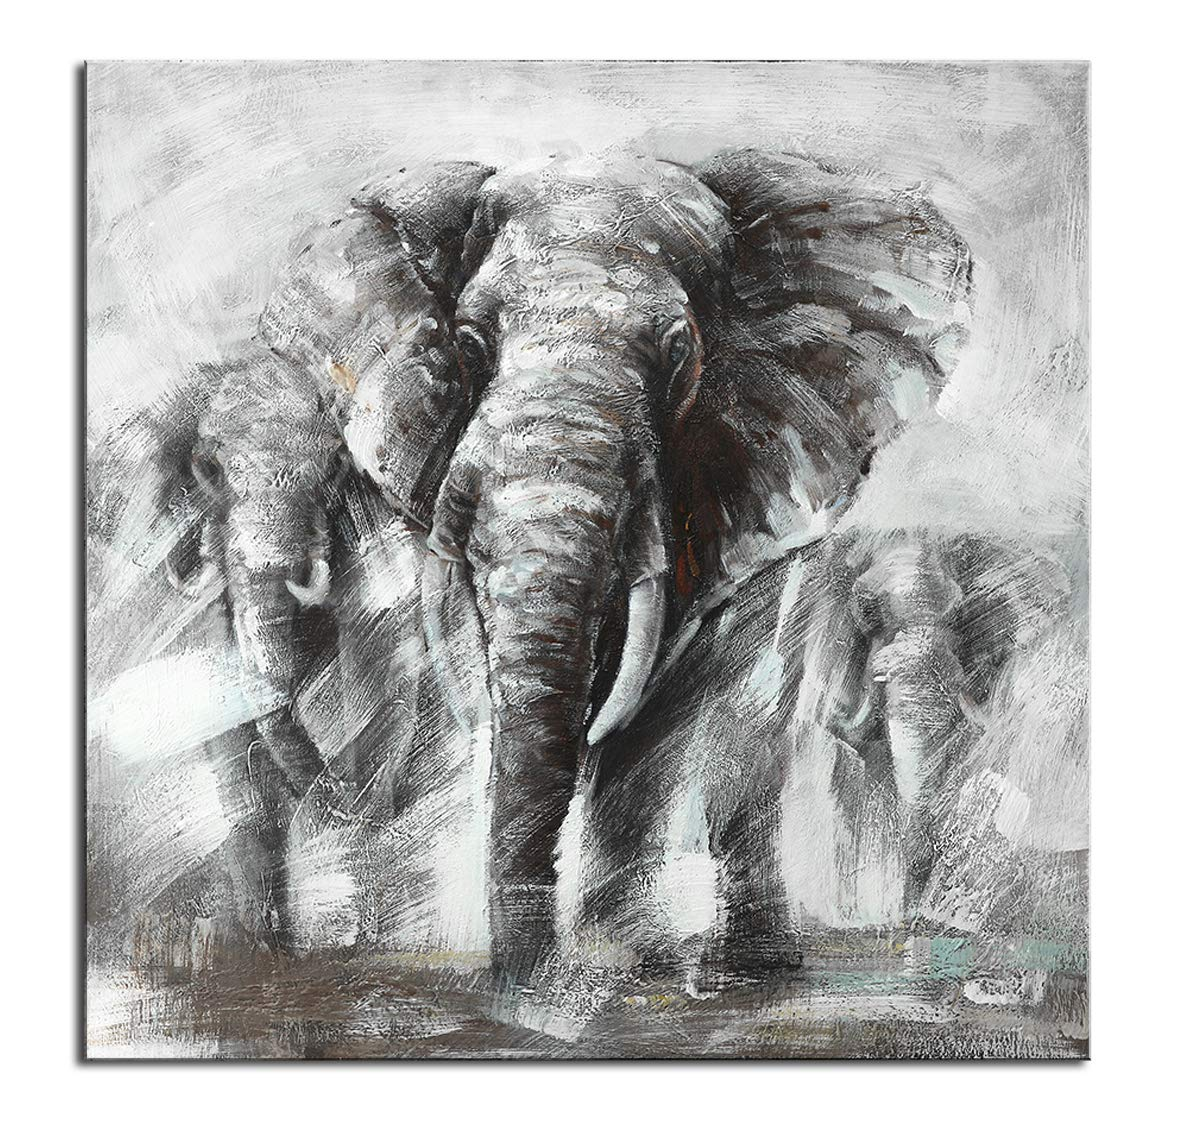 Hand painted elephant paintings wall decor leader elephants family love african wild animals contemporary oil painting black white canvas art thick